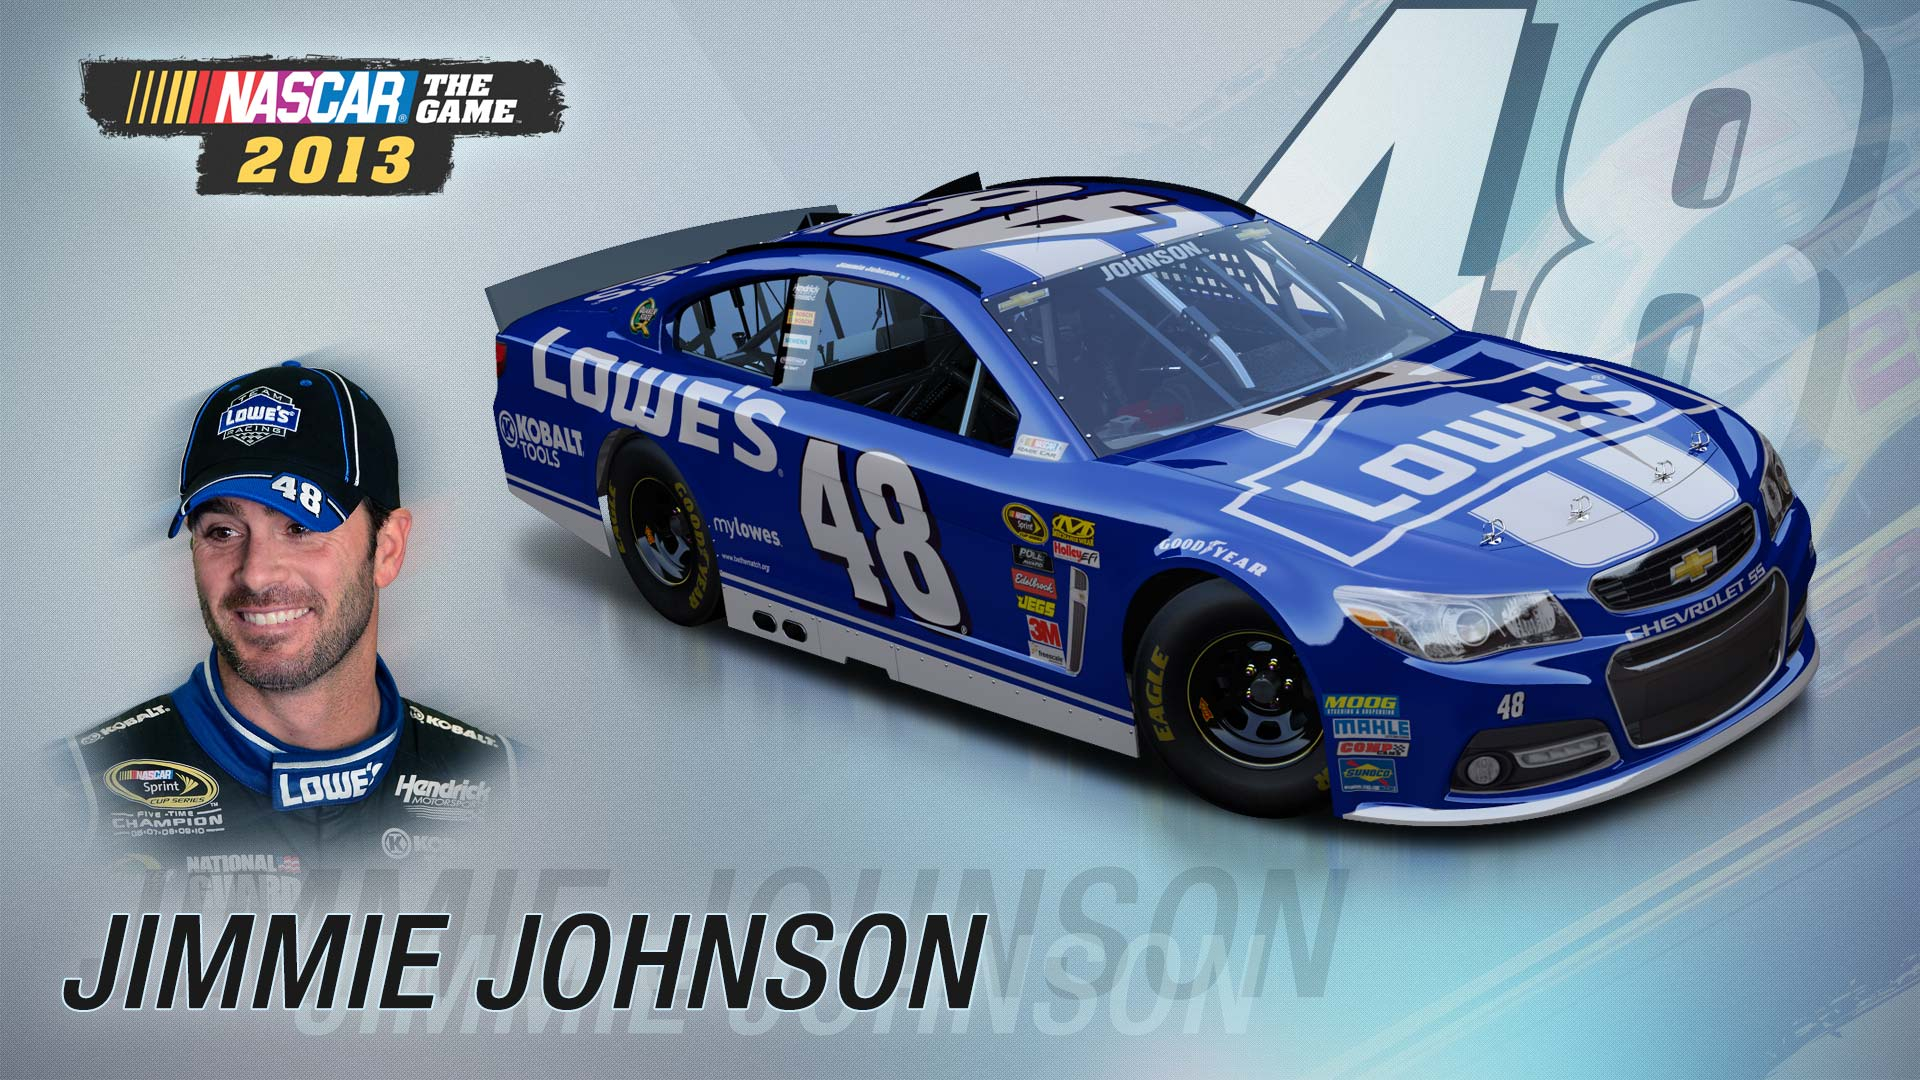 jimmie johnson wallpapers   wwwhigh definition wallpapercom 1920x1080